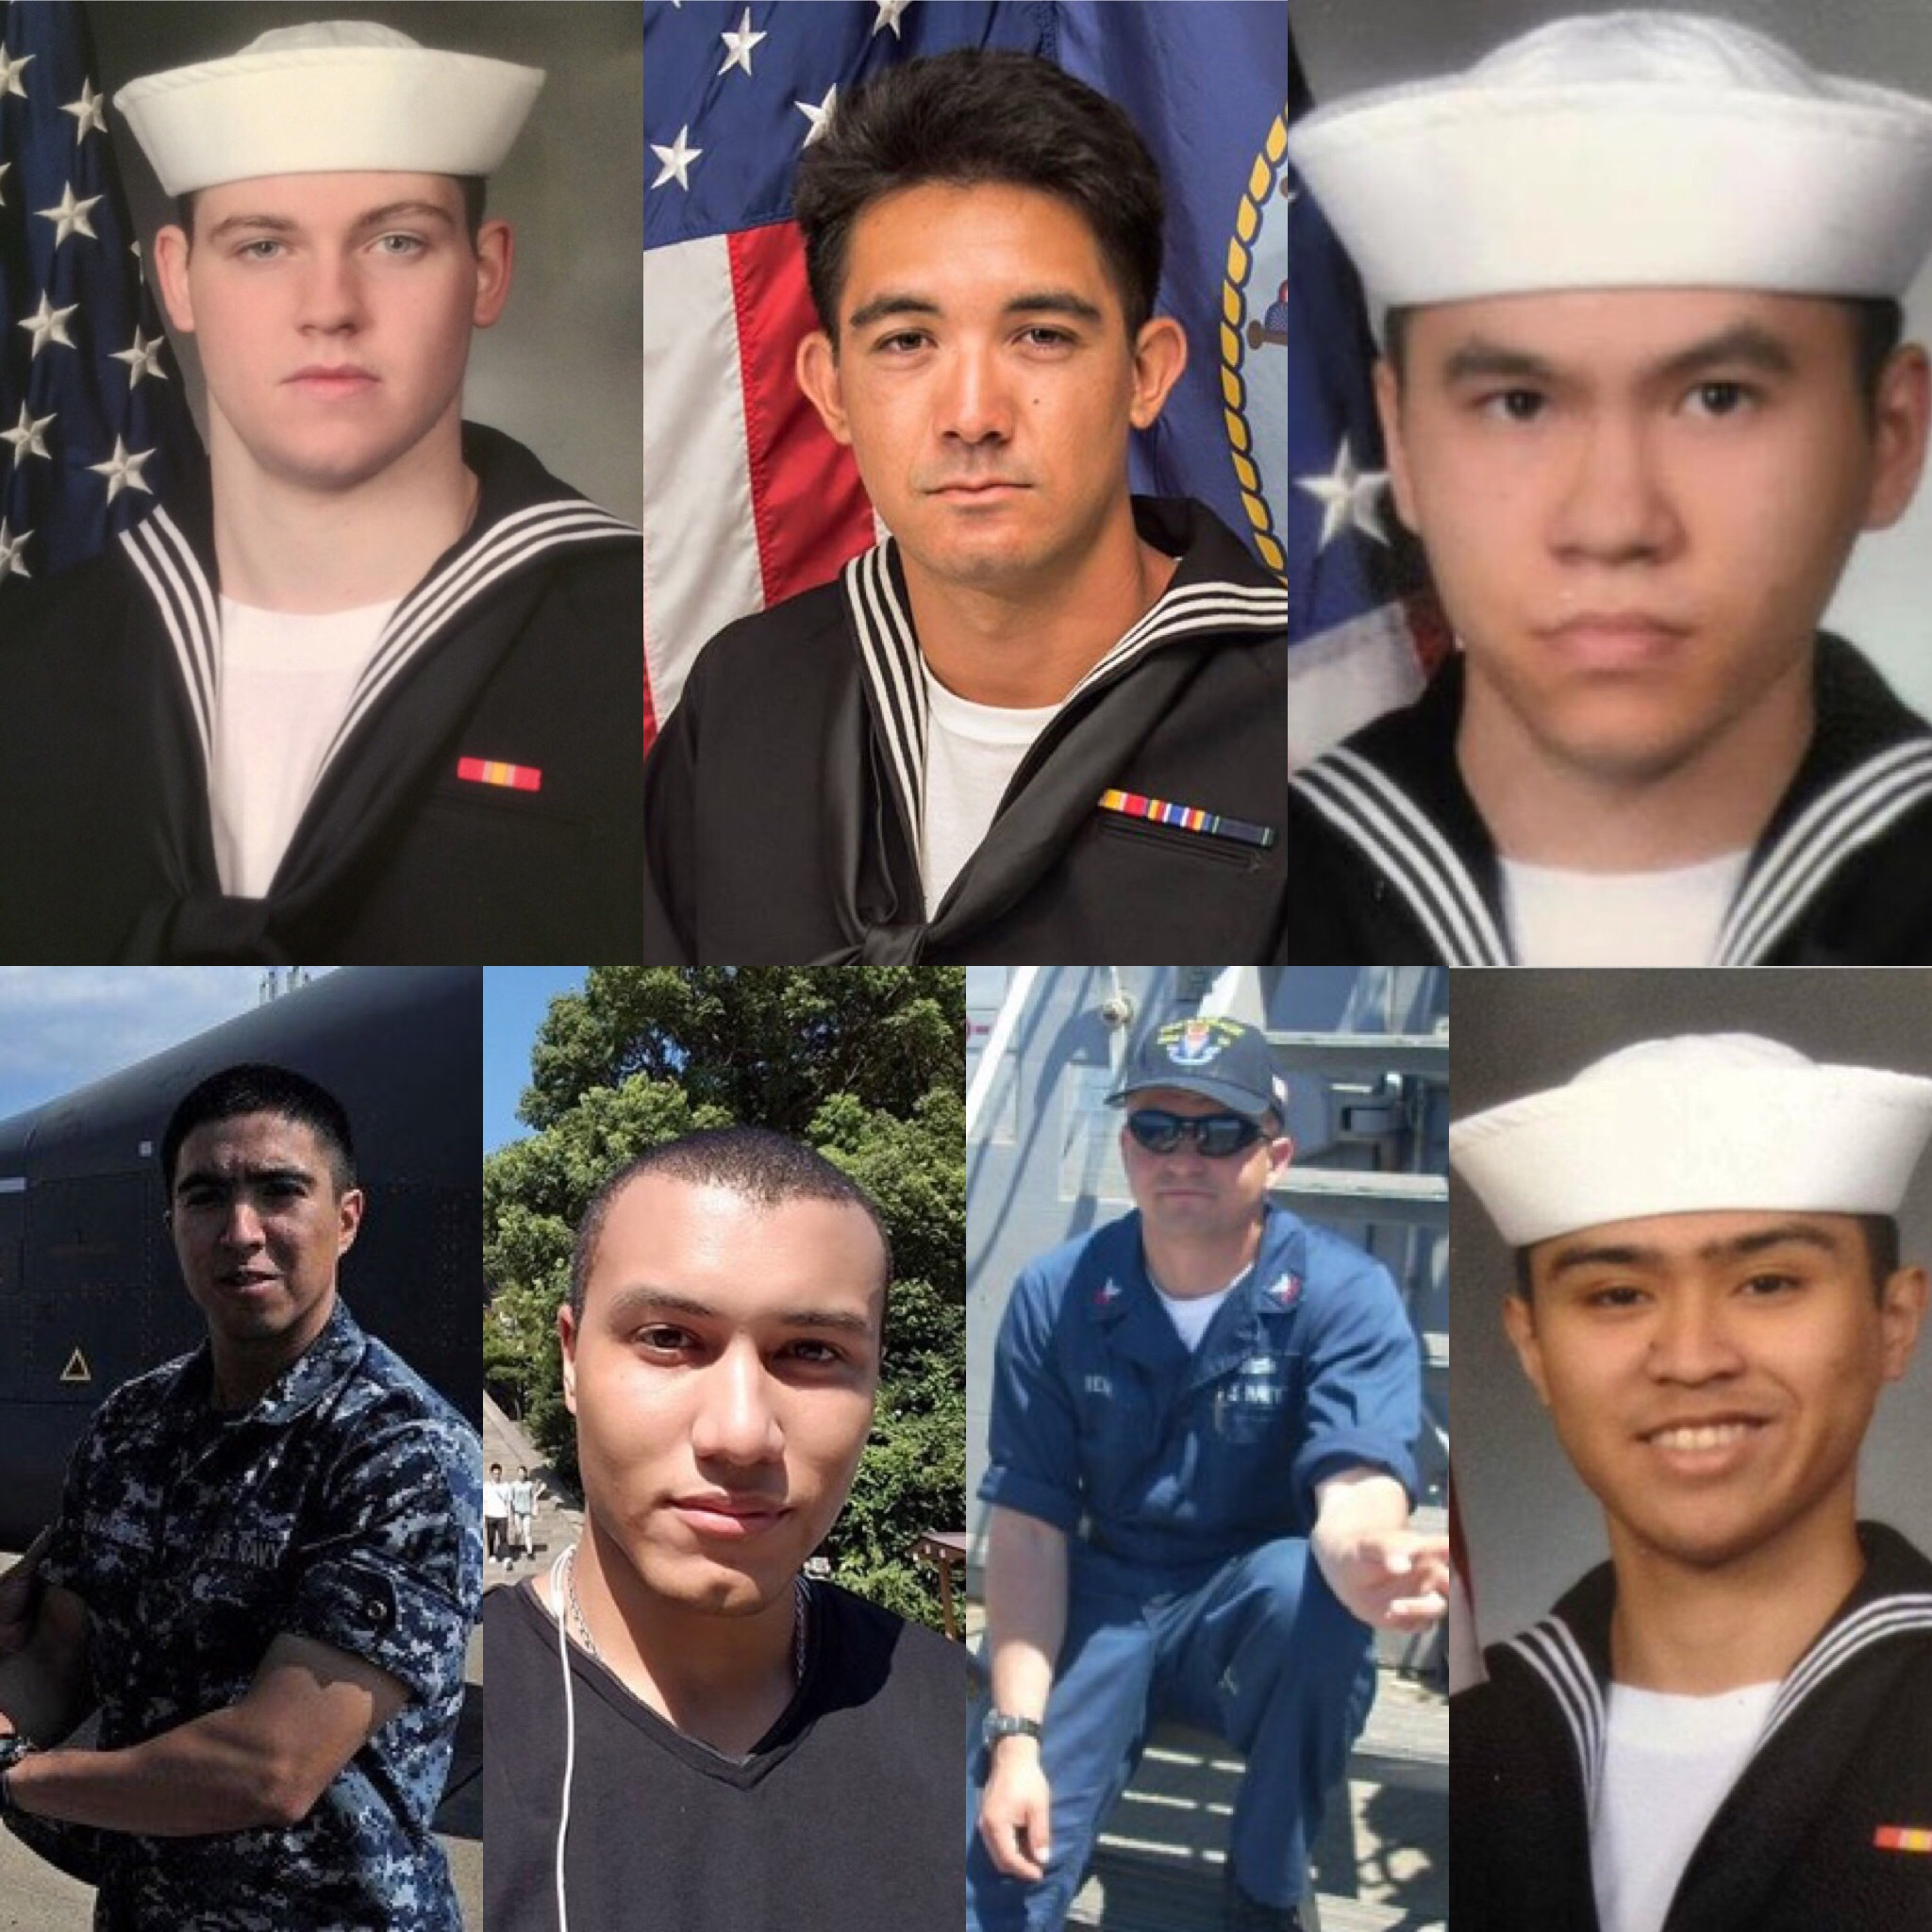 A photo compilation depicting the seven sailors who died during June 17, 2017 collision between a merchant ship and the guided missile destroyer USS Fitzgerald. USNI News Image